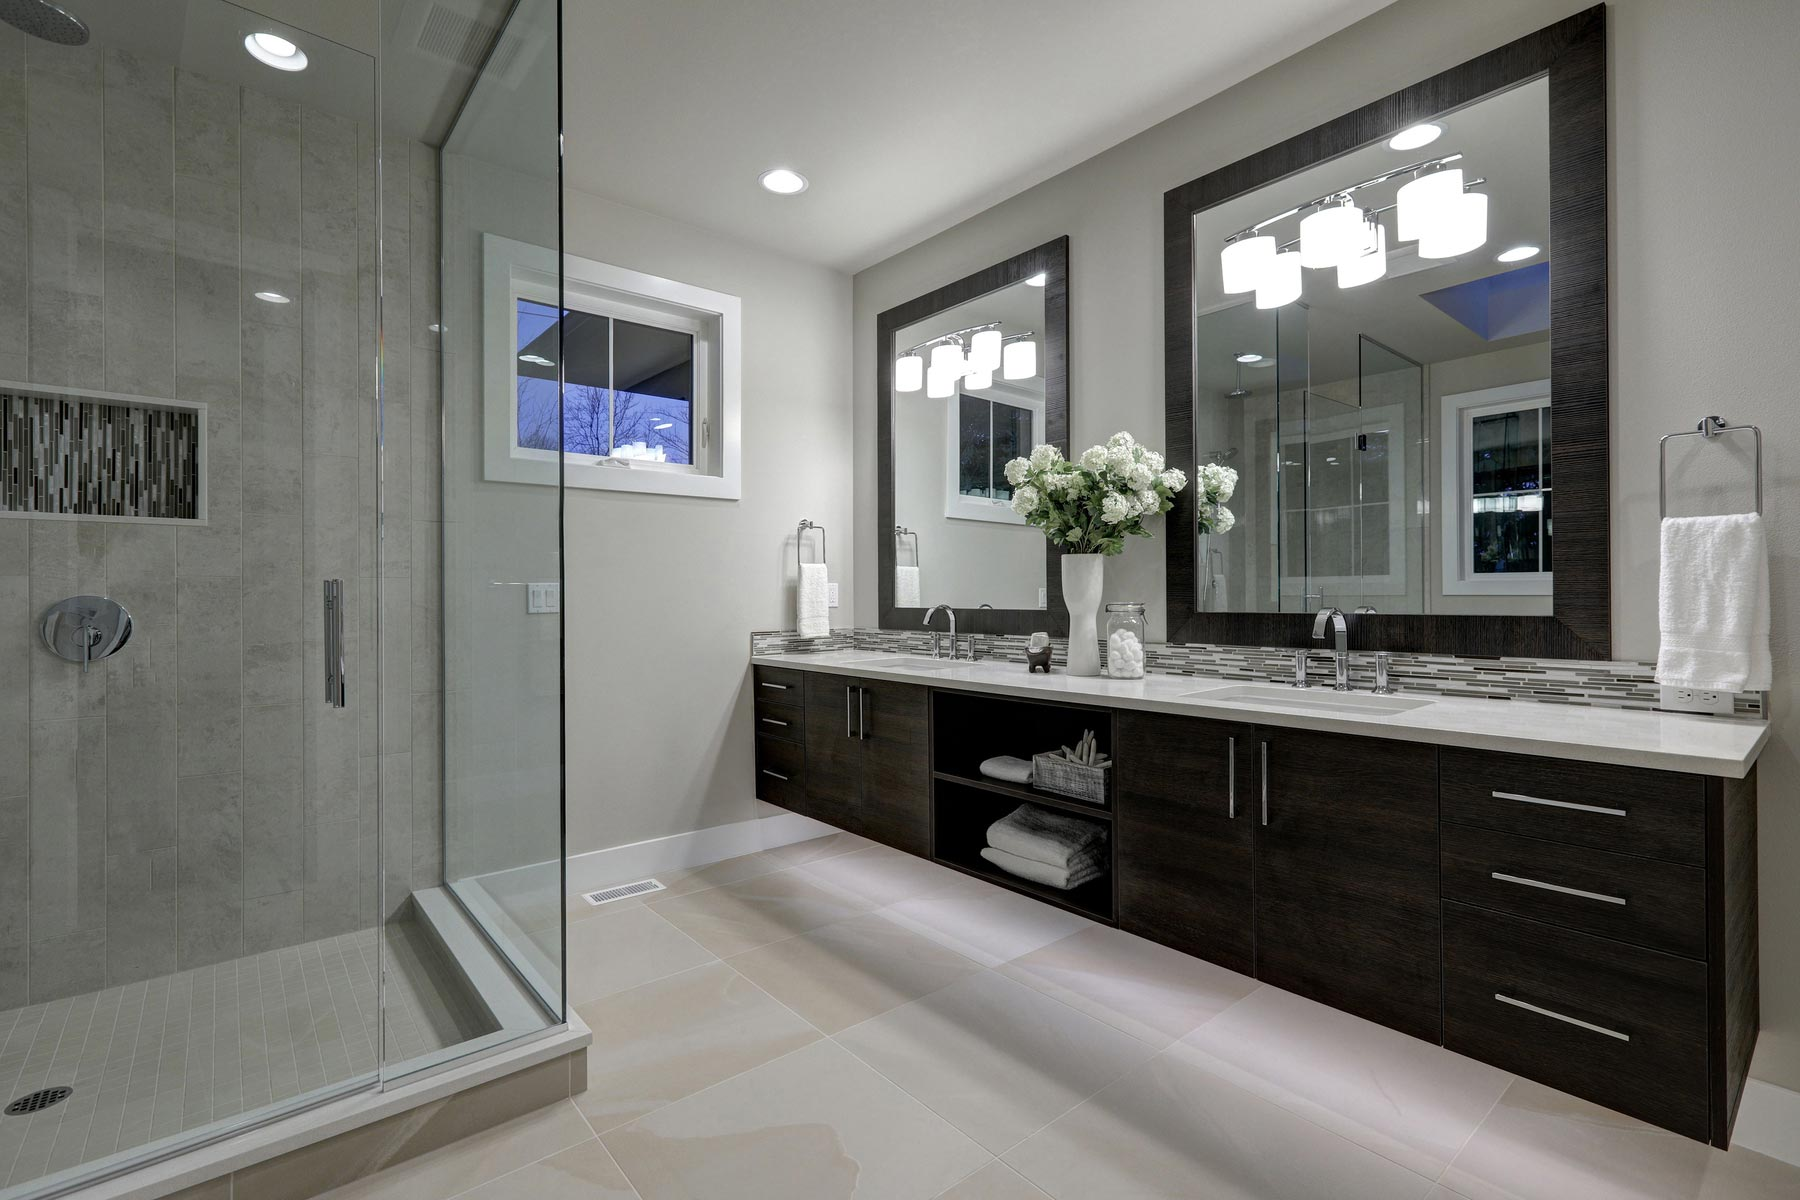 Bathtub To Shower Remodel Cost